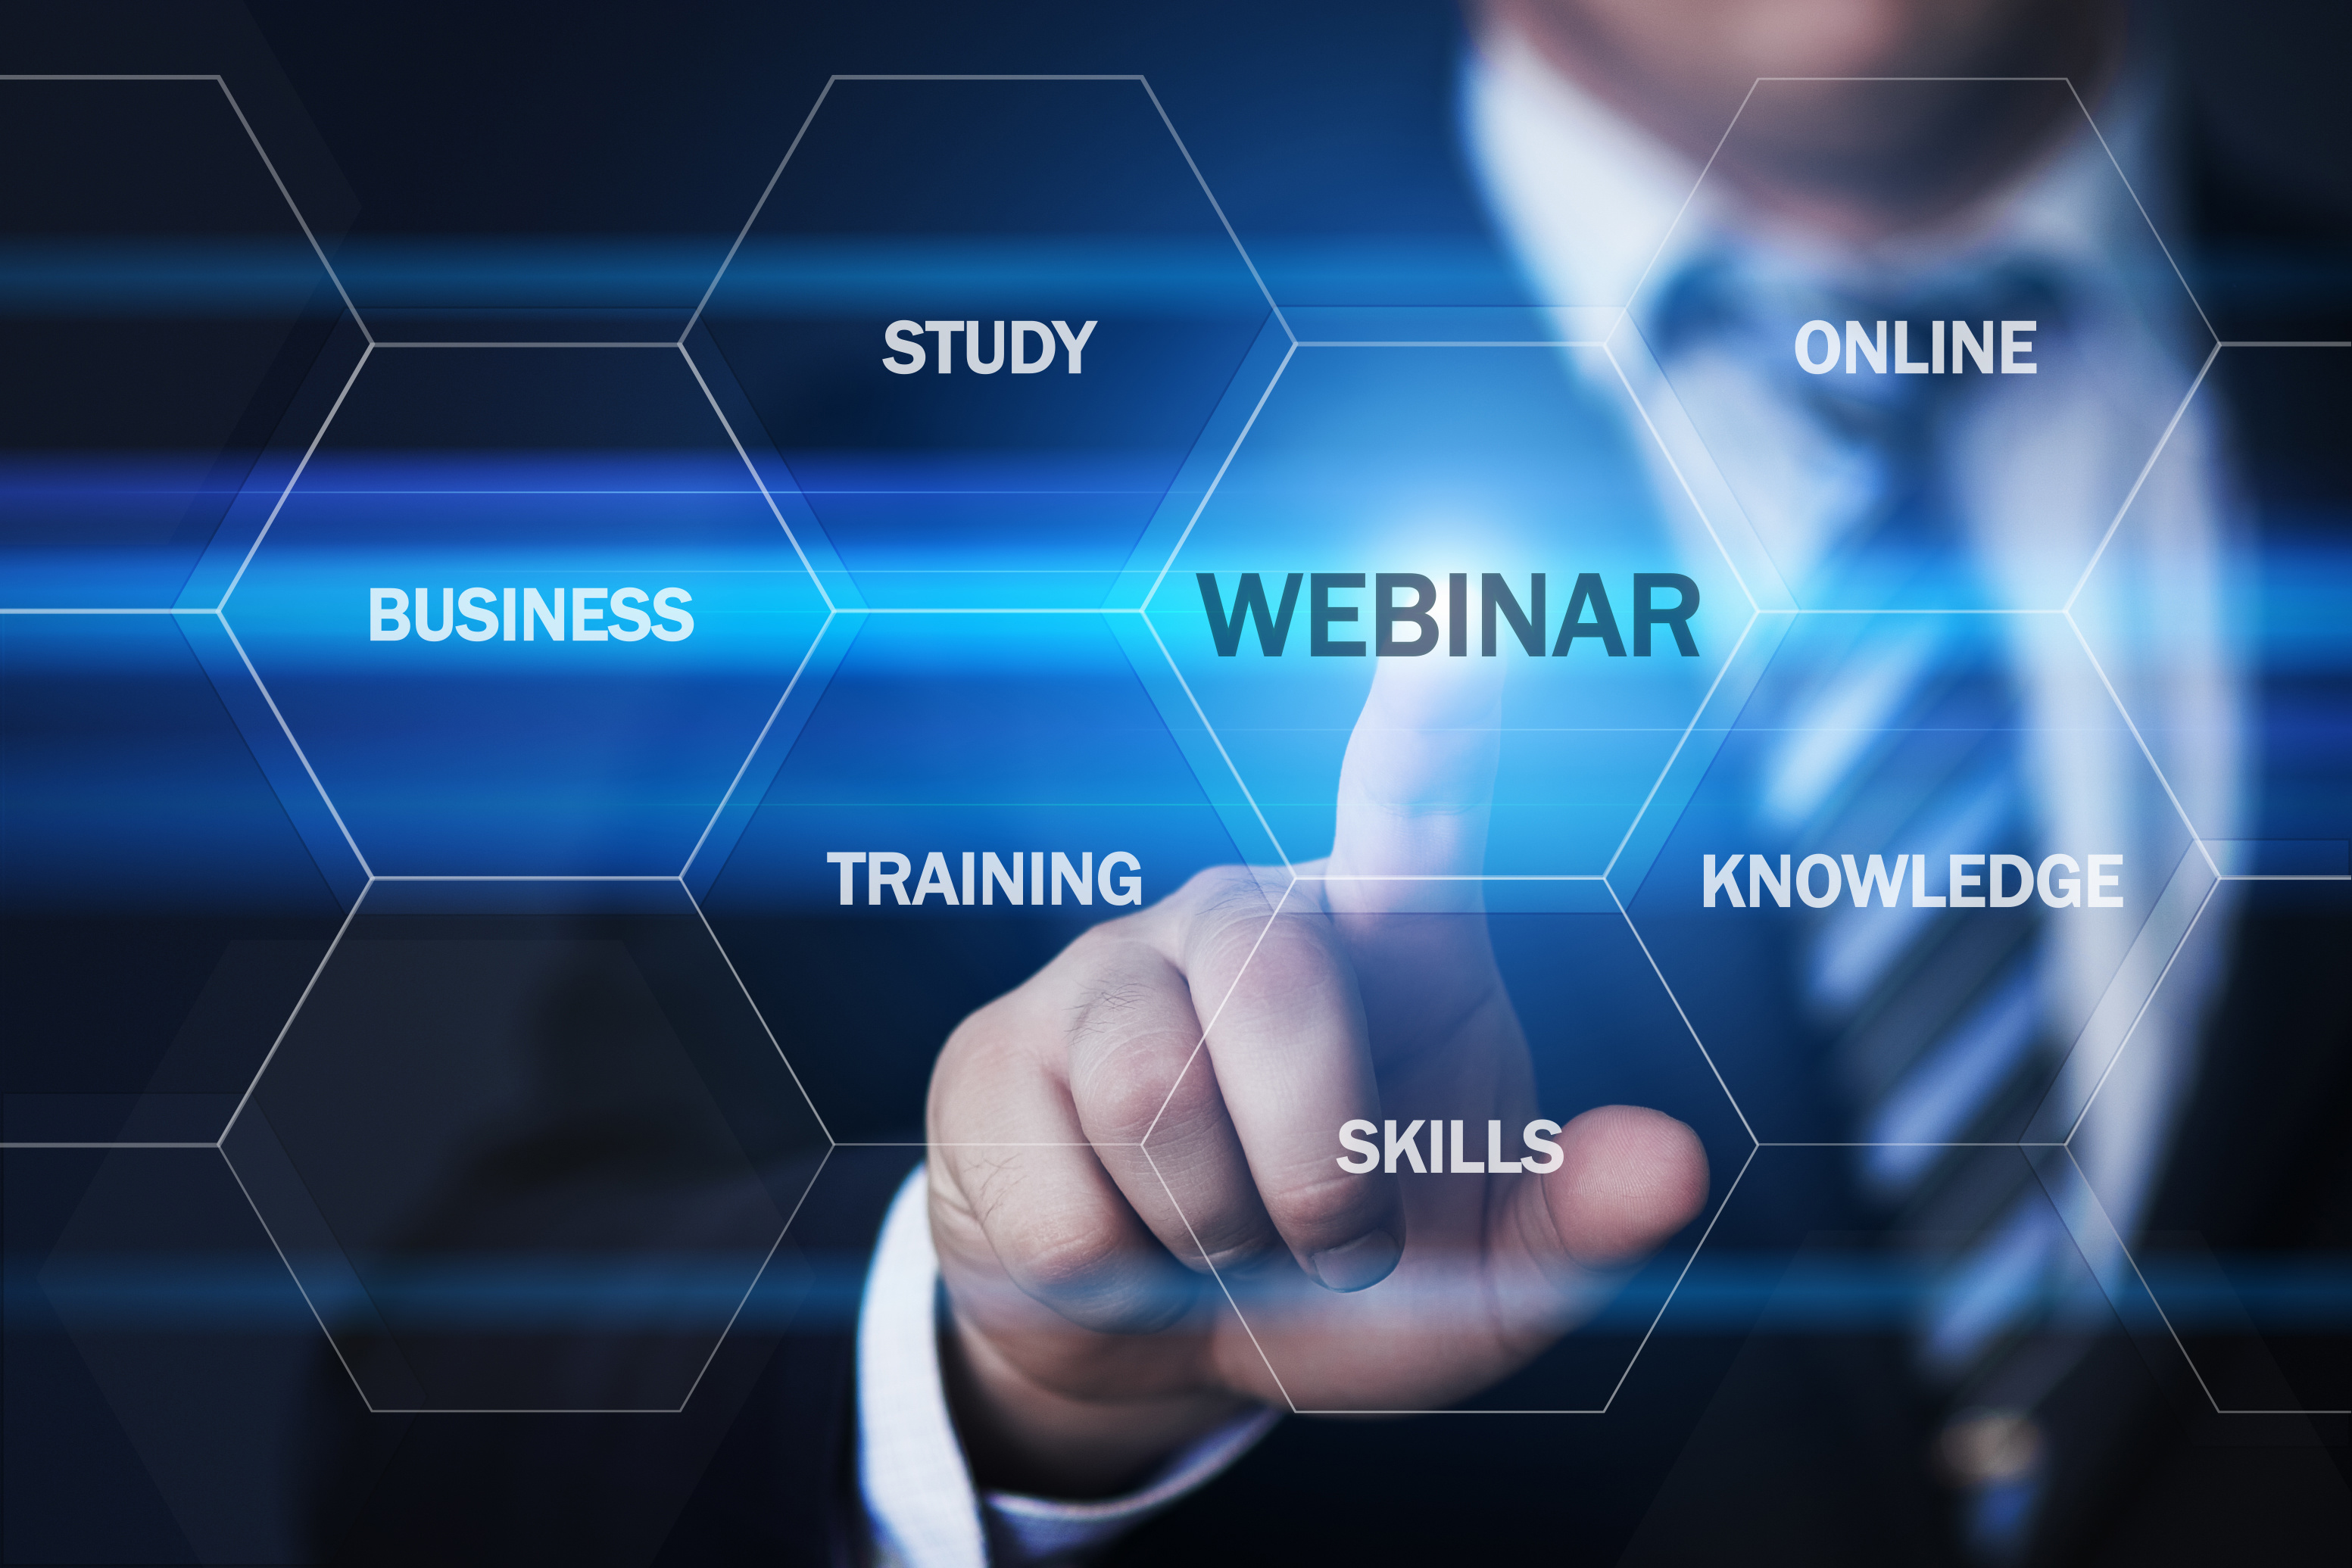 Webinar & Training image